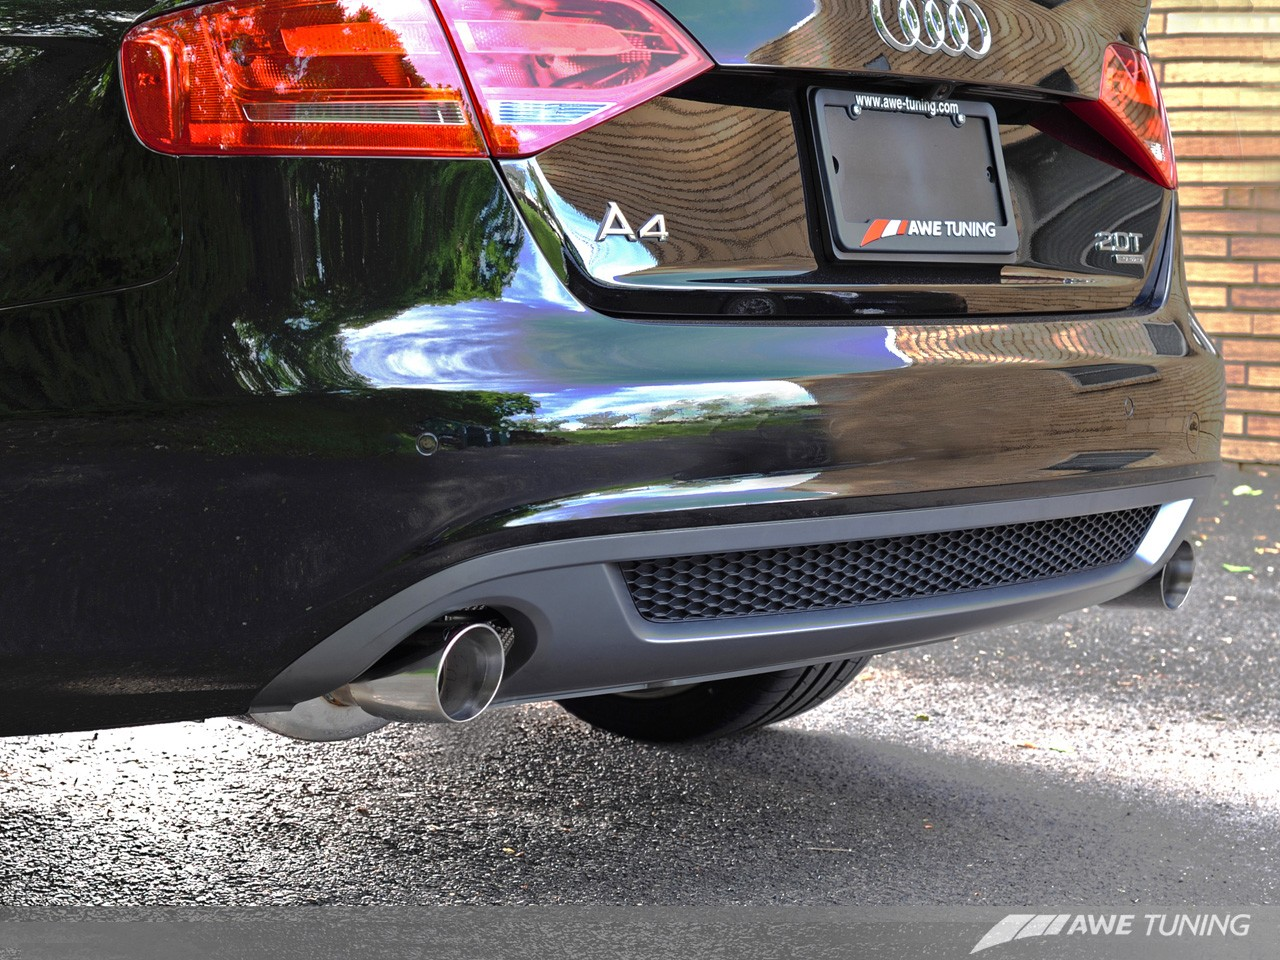 Awe Touring Edition Exhaust And Downpipe Systems For B8 A4 20t